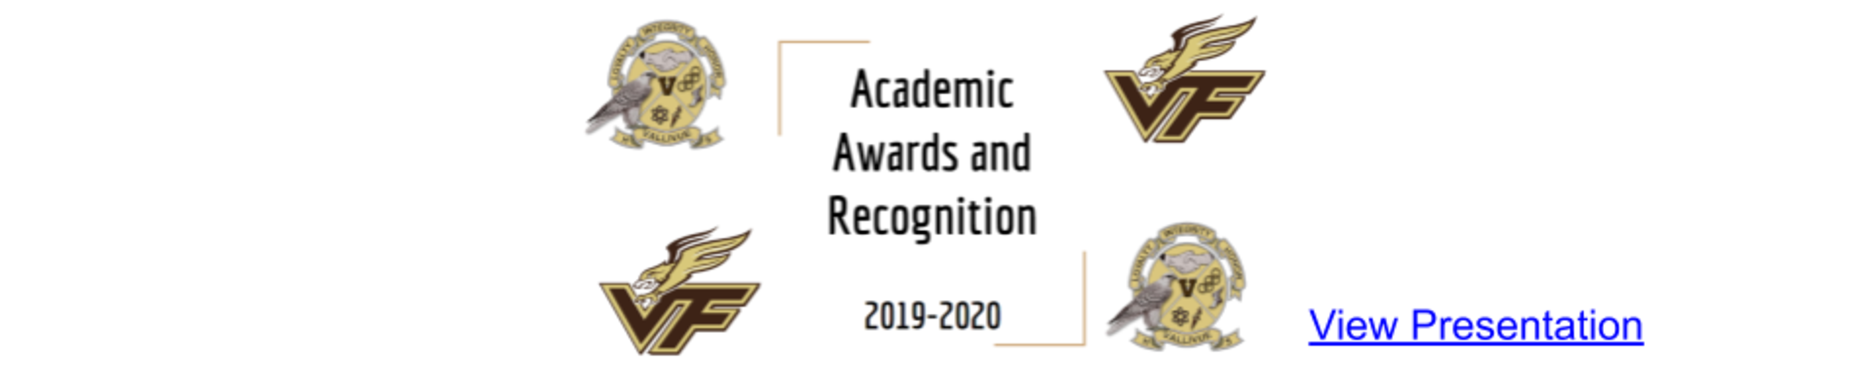 Academic Awards and Recognition